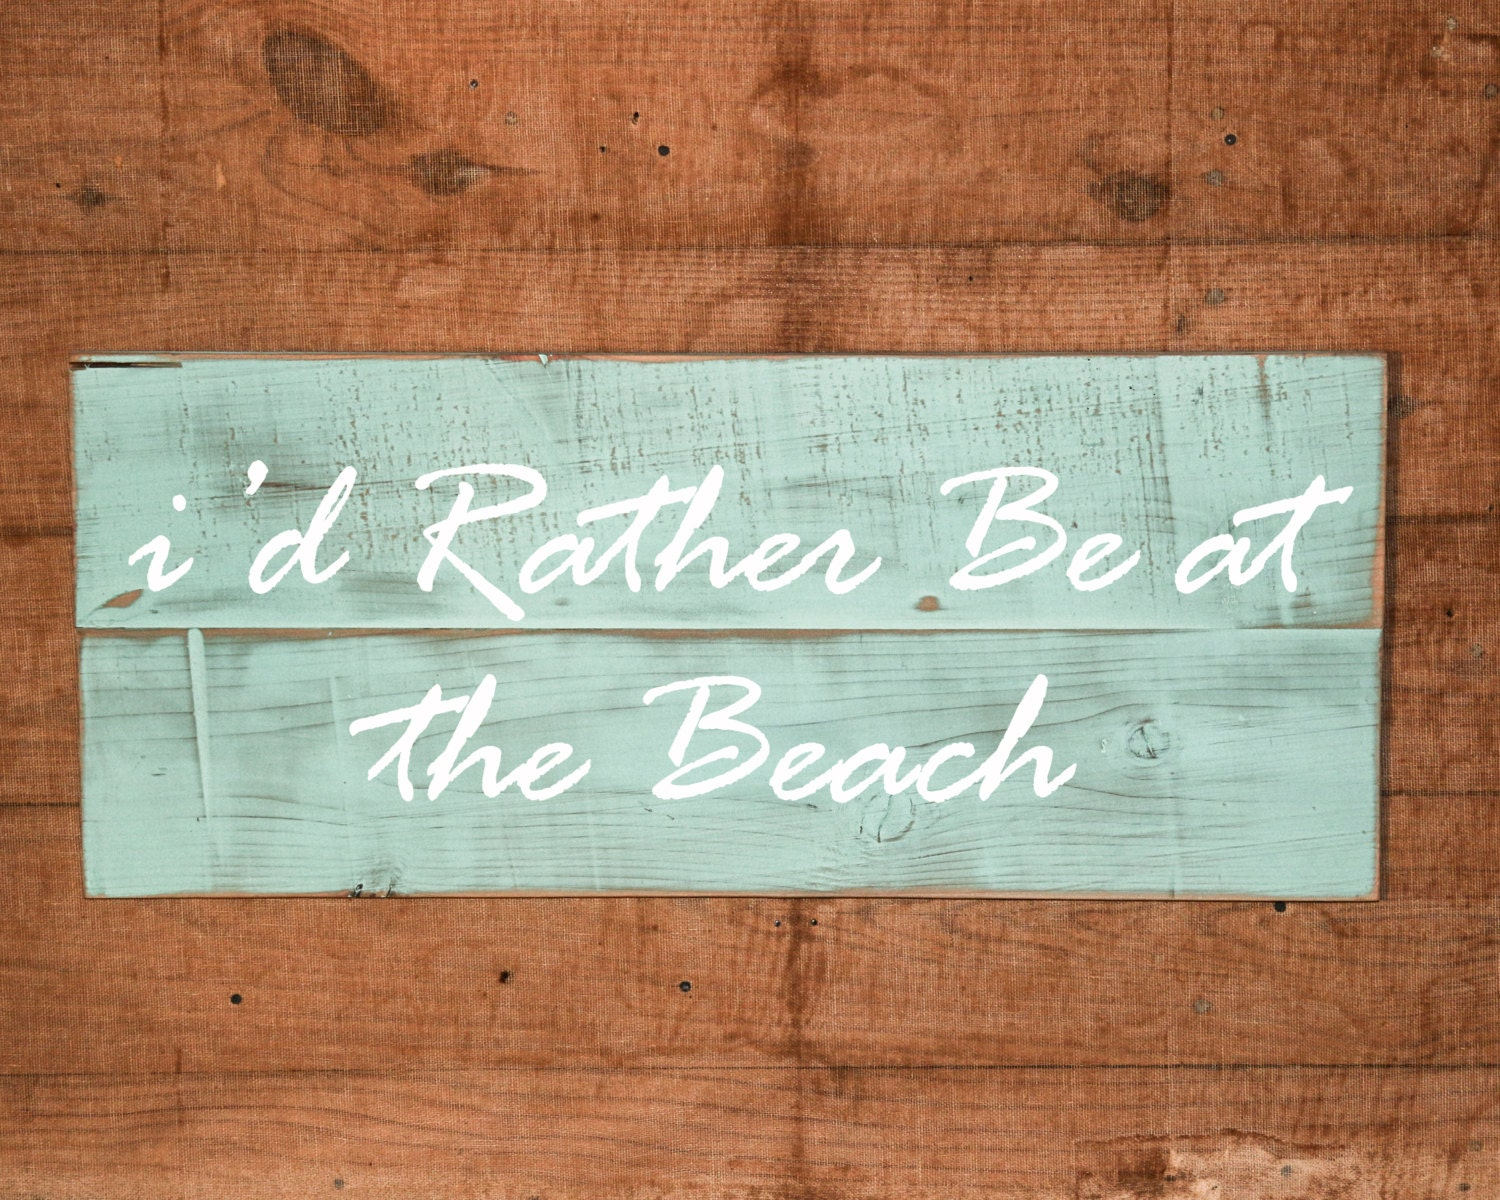 I\'d Rather Be at The Beach - Beach Sign - Hand Painted - Rustic Sign, Custom Sign, Beach House Decor 24inx10in